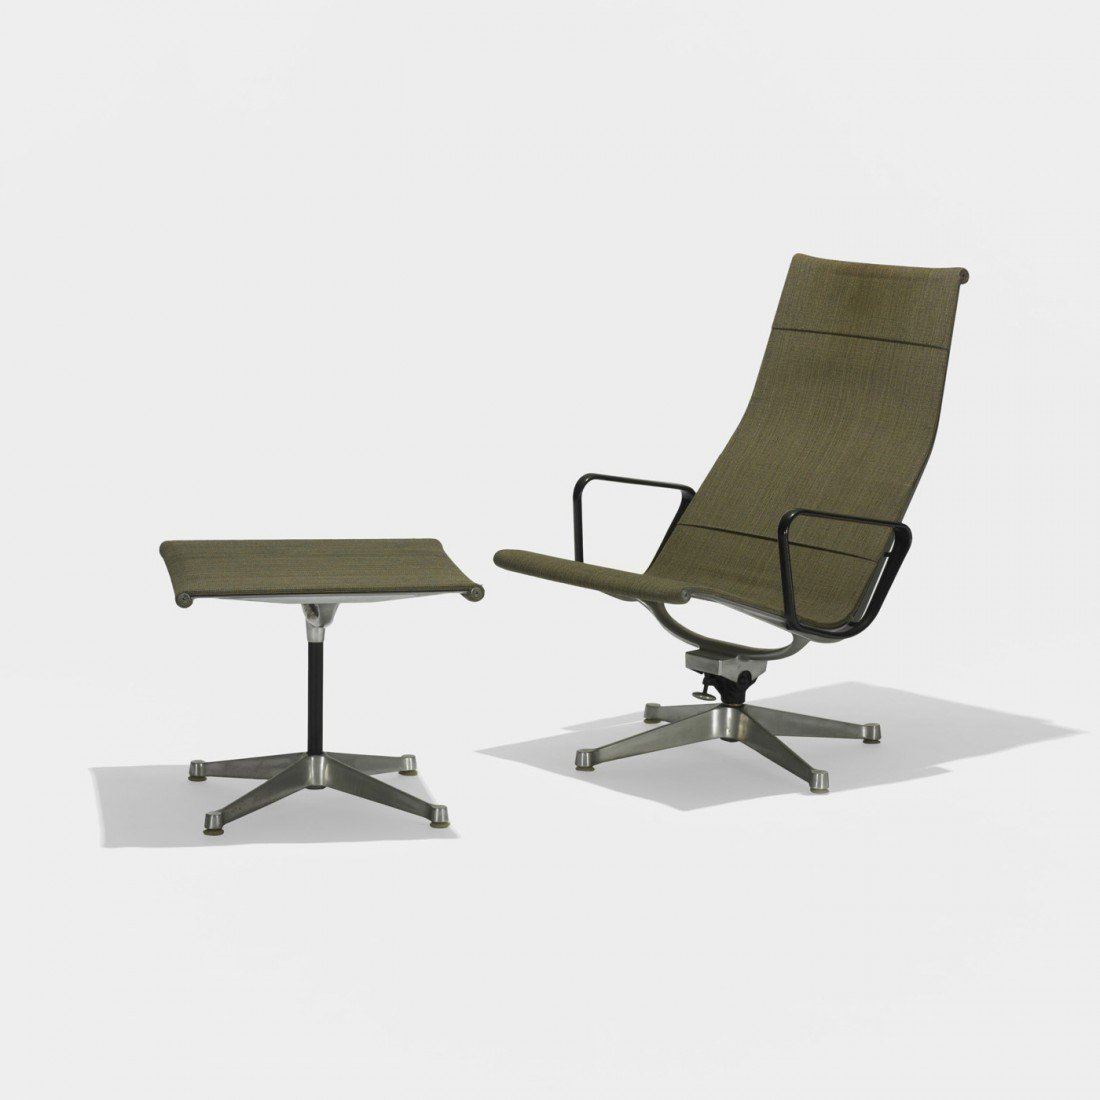 120: Eames Aluminum Group lounge chair and ottoman